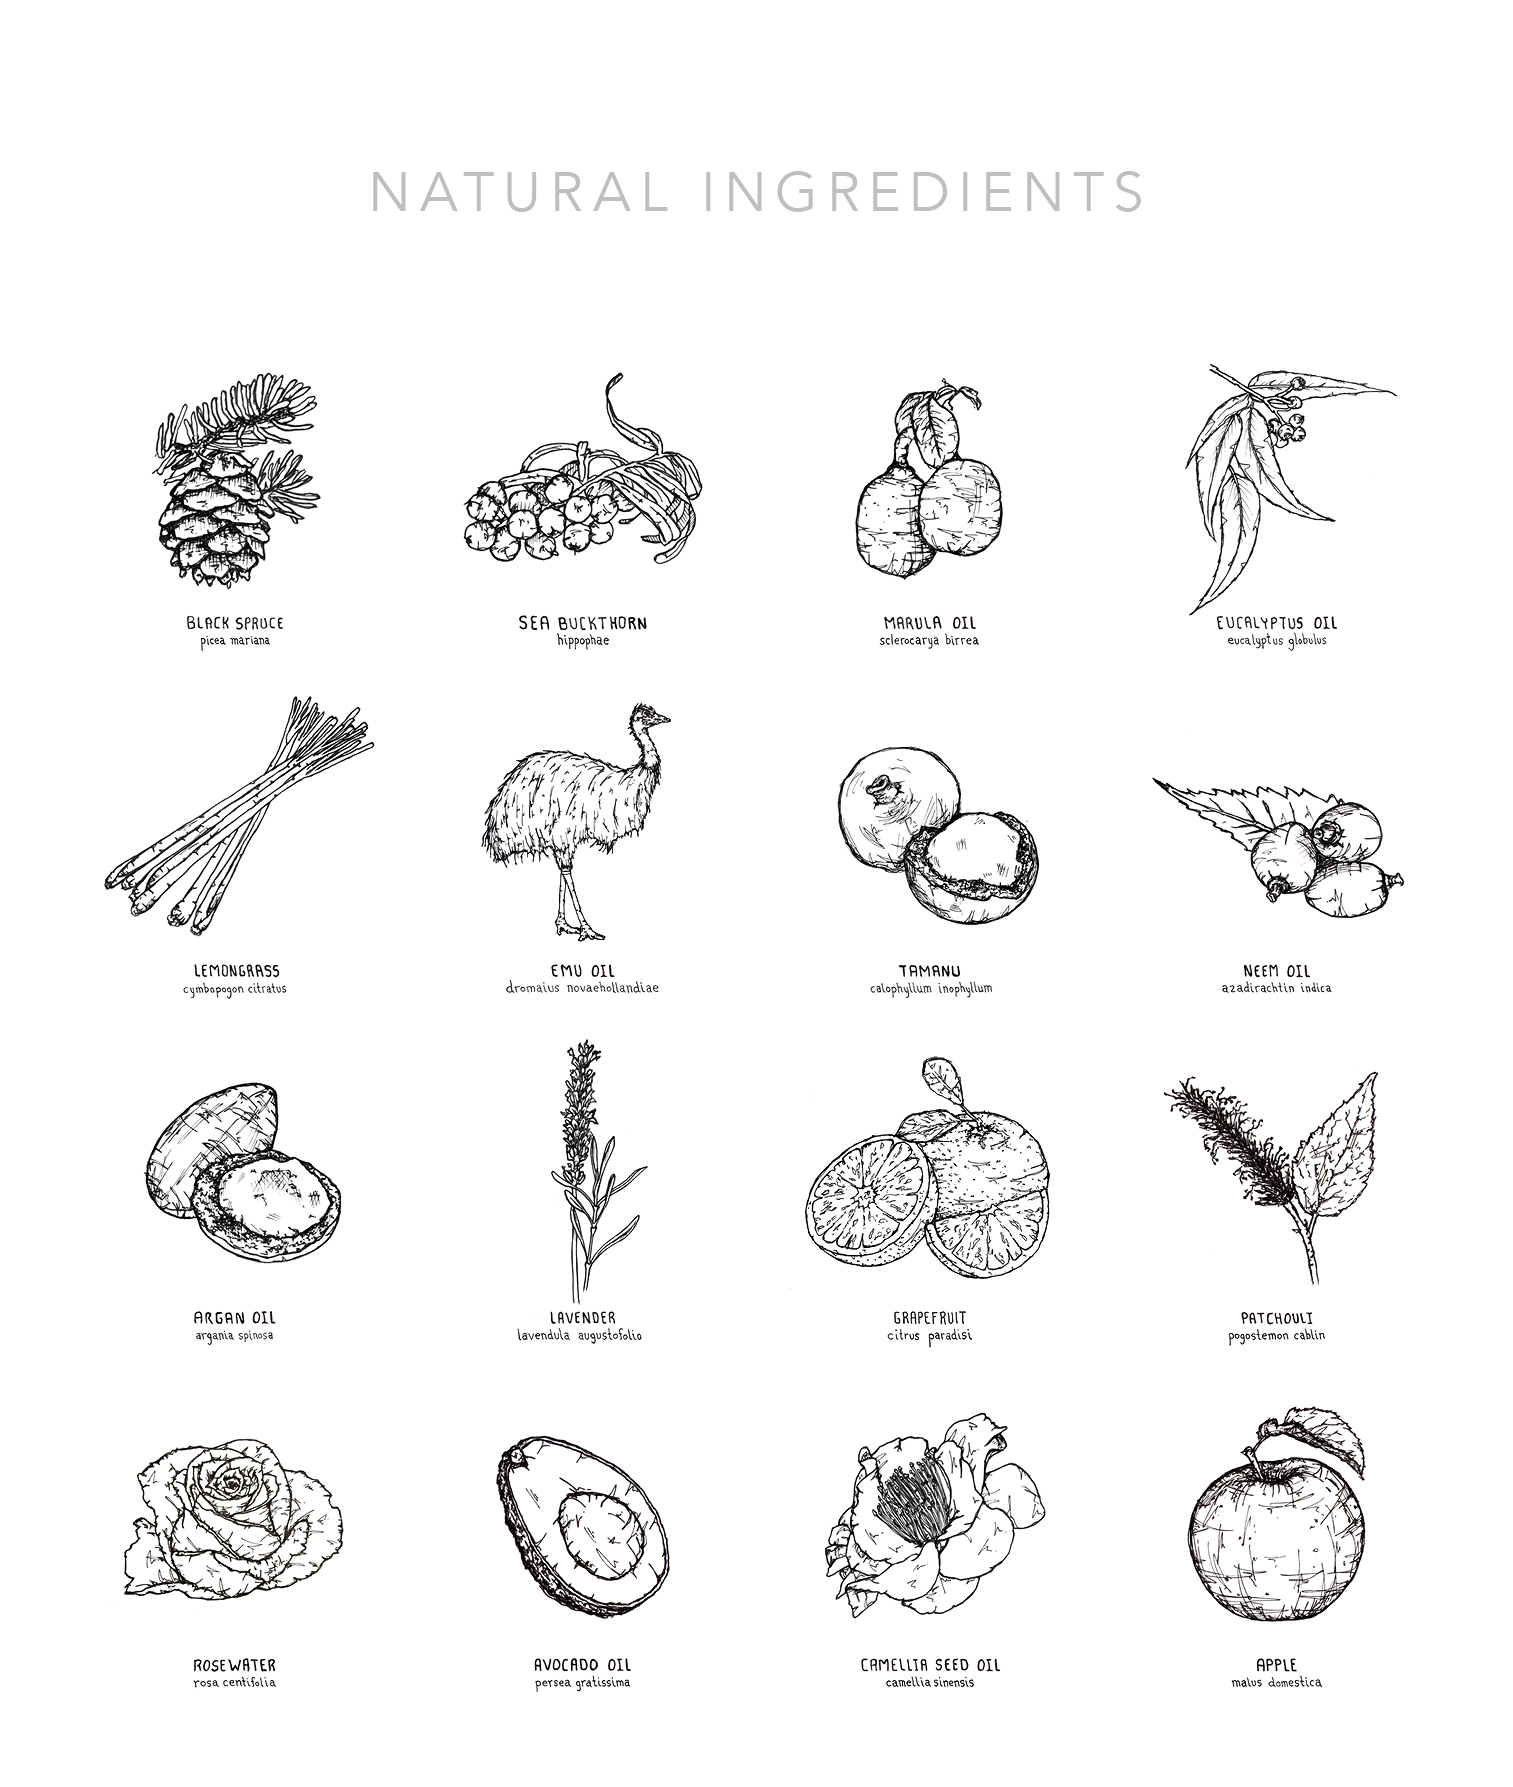 Ingredients List Colour_bw.jpg